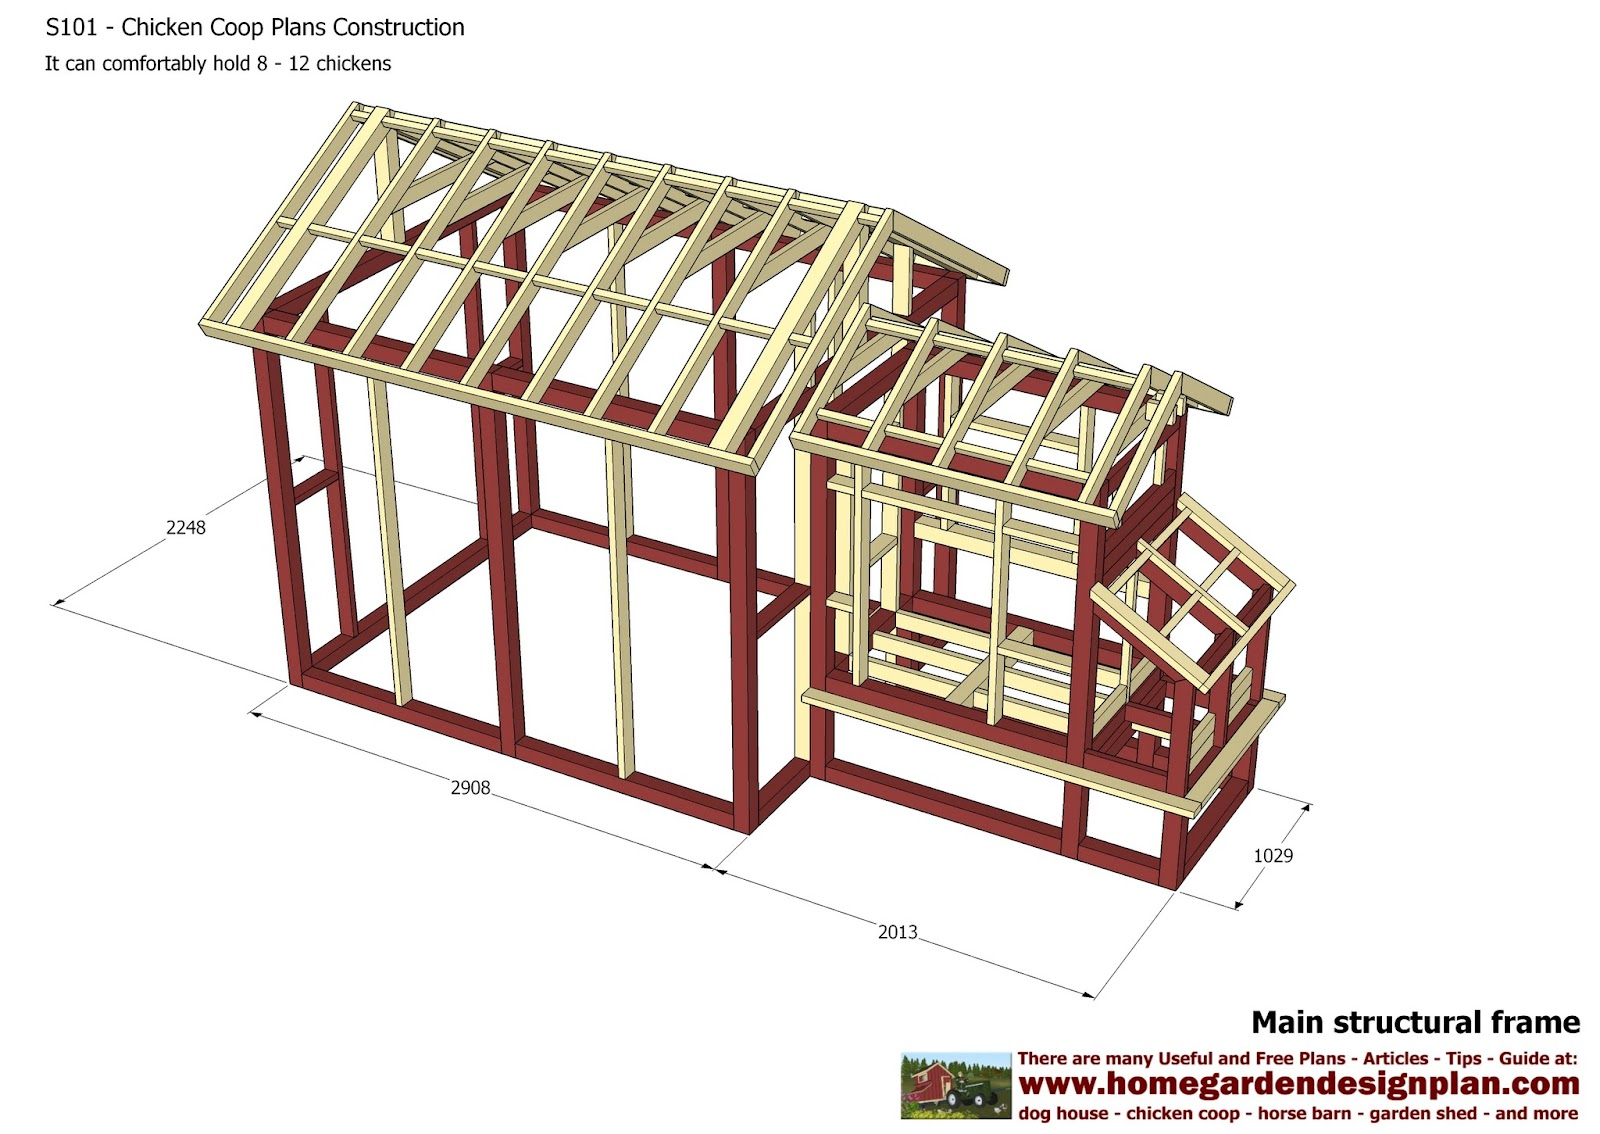 Home garden plans s101 chicken coop plans construction for Plans for hen house